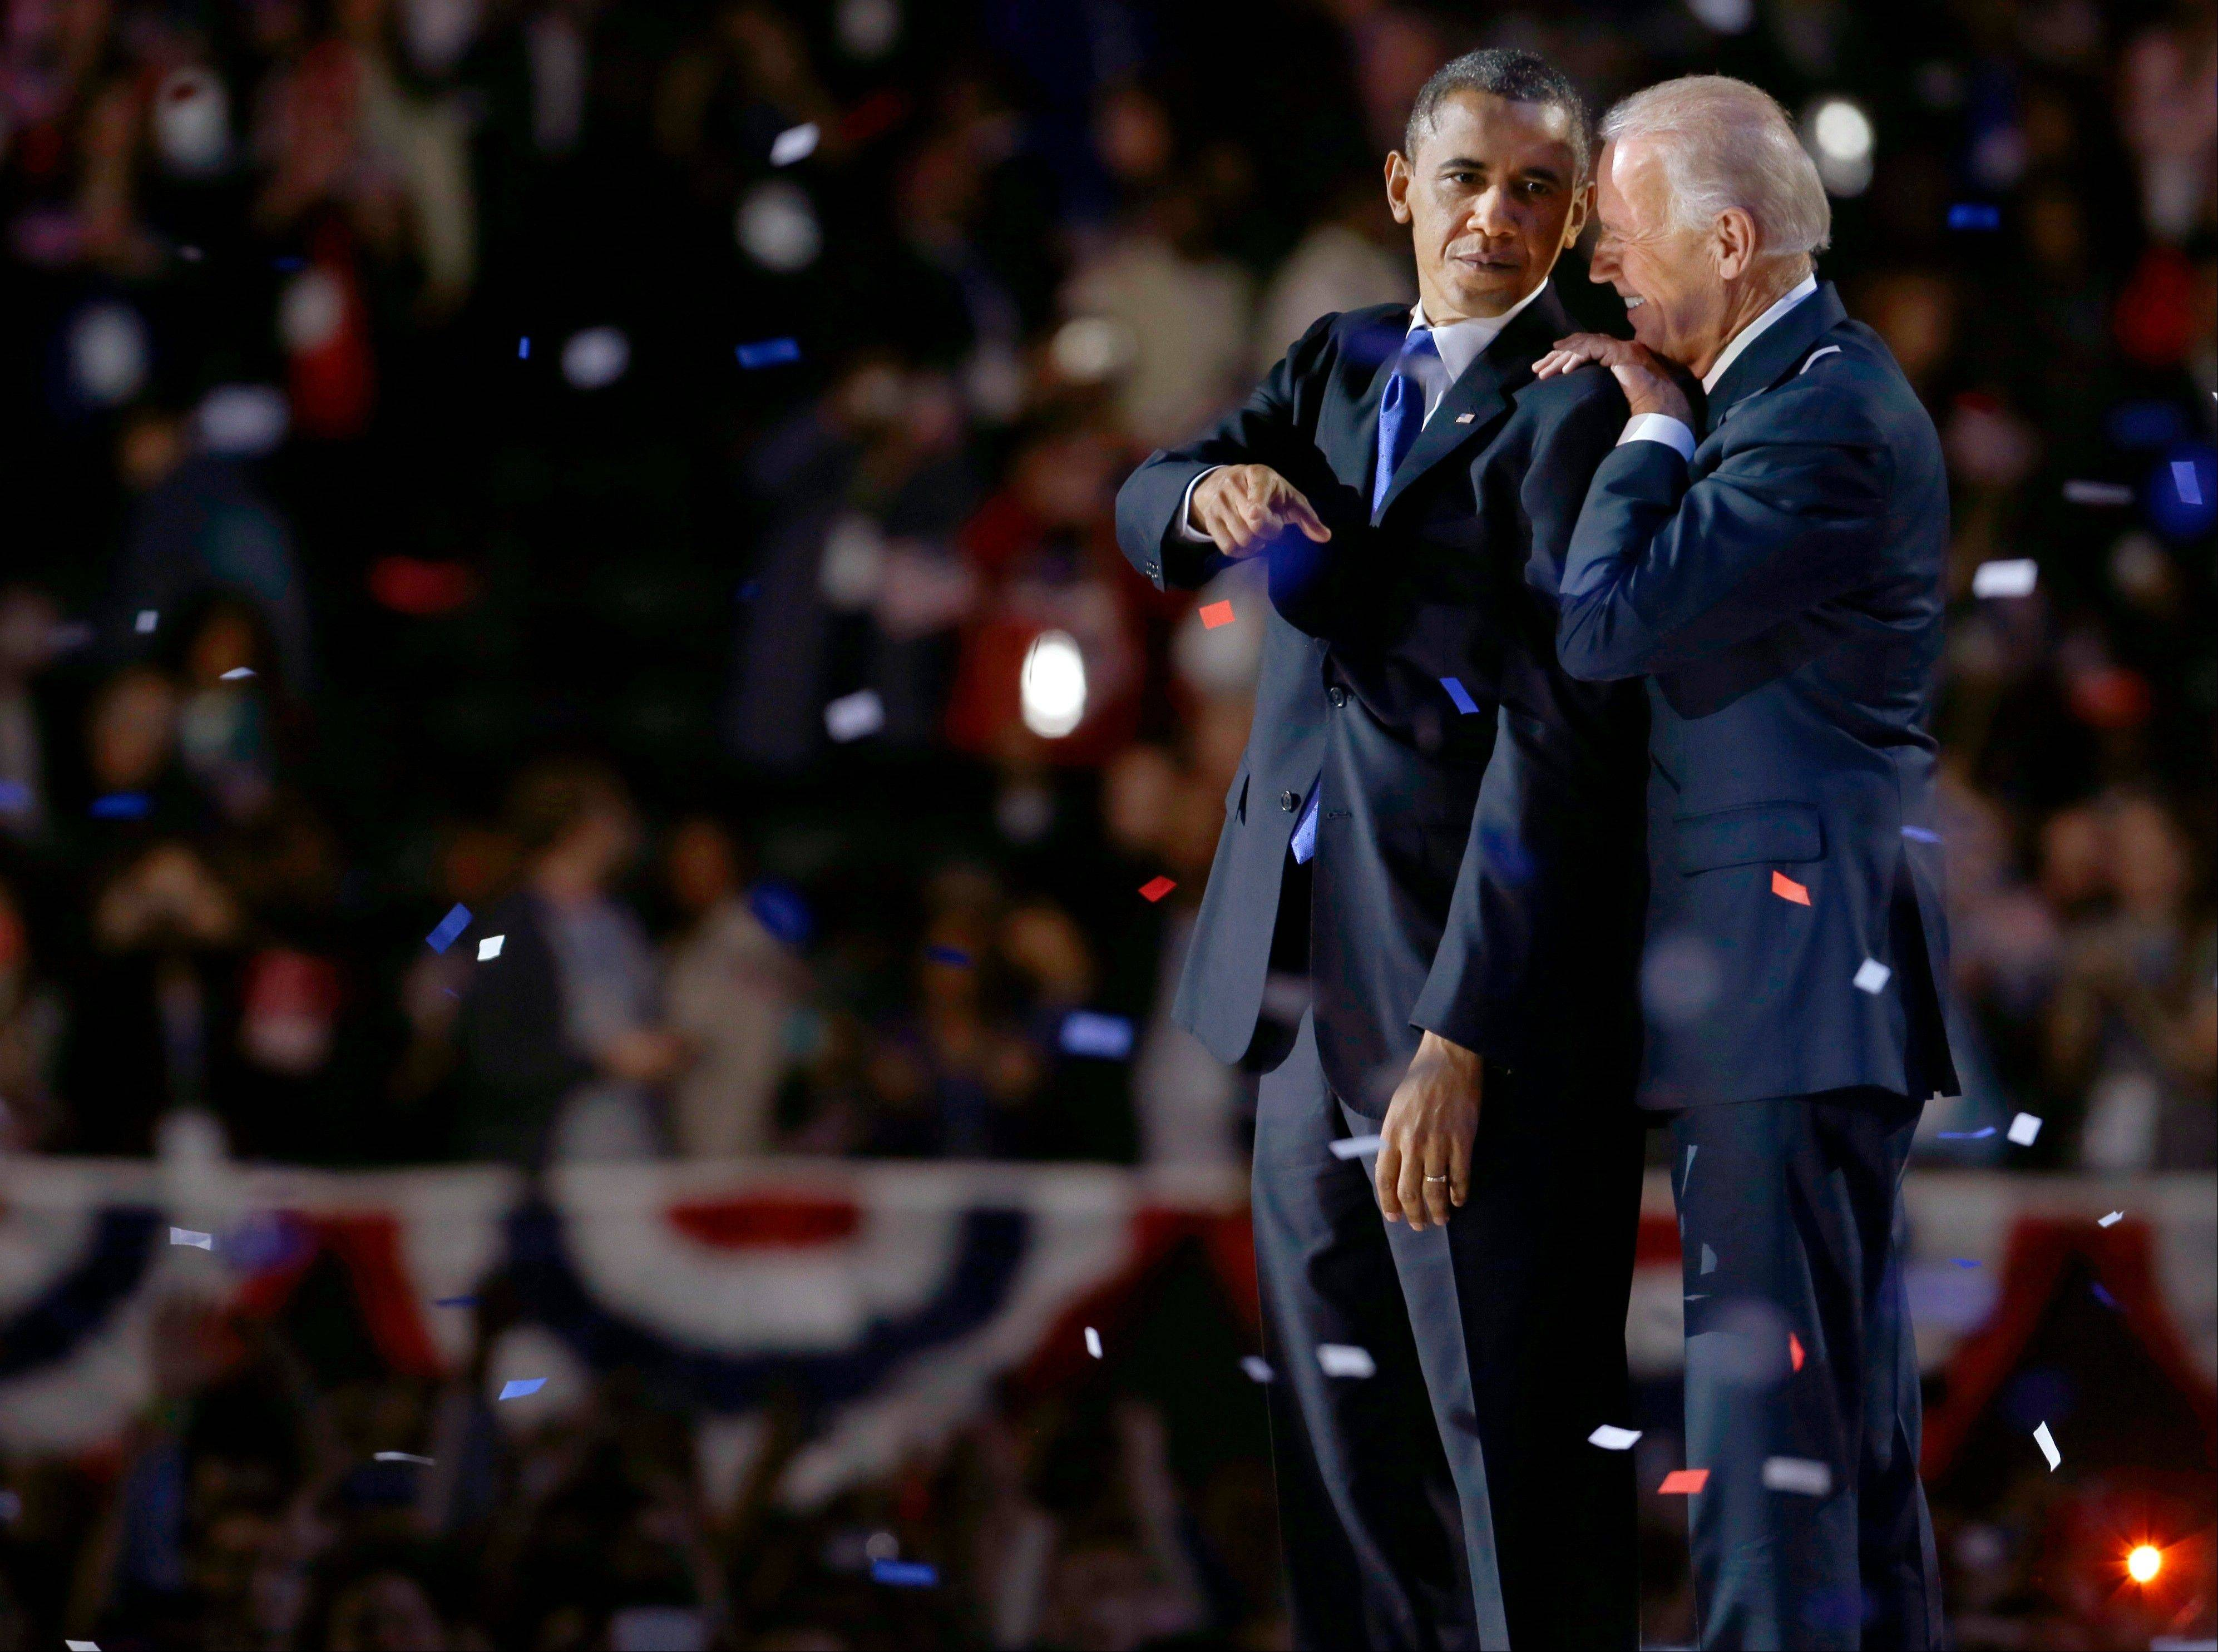 Vice President Joe Biden, right, talks to President Barack Obama at their election night party Wednesday, Nov. 7, 2012, in Chicago. President Obama's defeat of Republican challenger former Massachusetts Gov. Mitt Romney was voted the fourth most important news story in the AP's annual survey of its Illinois member editors and staff.